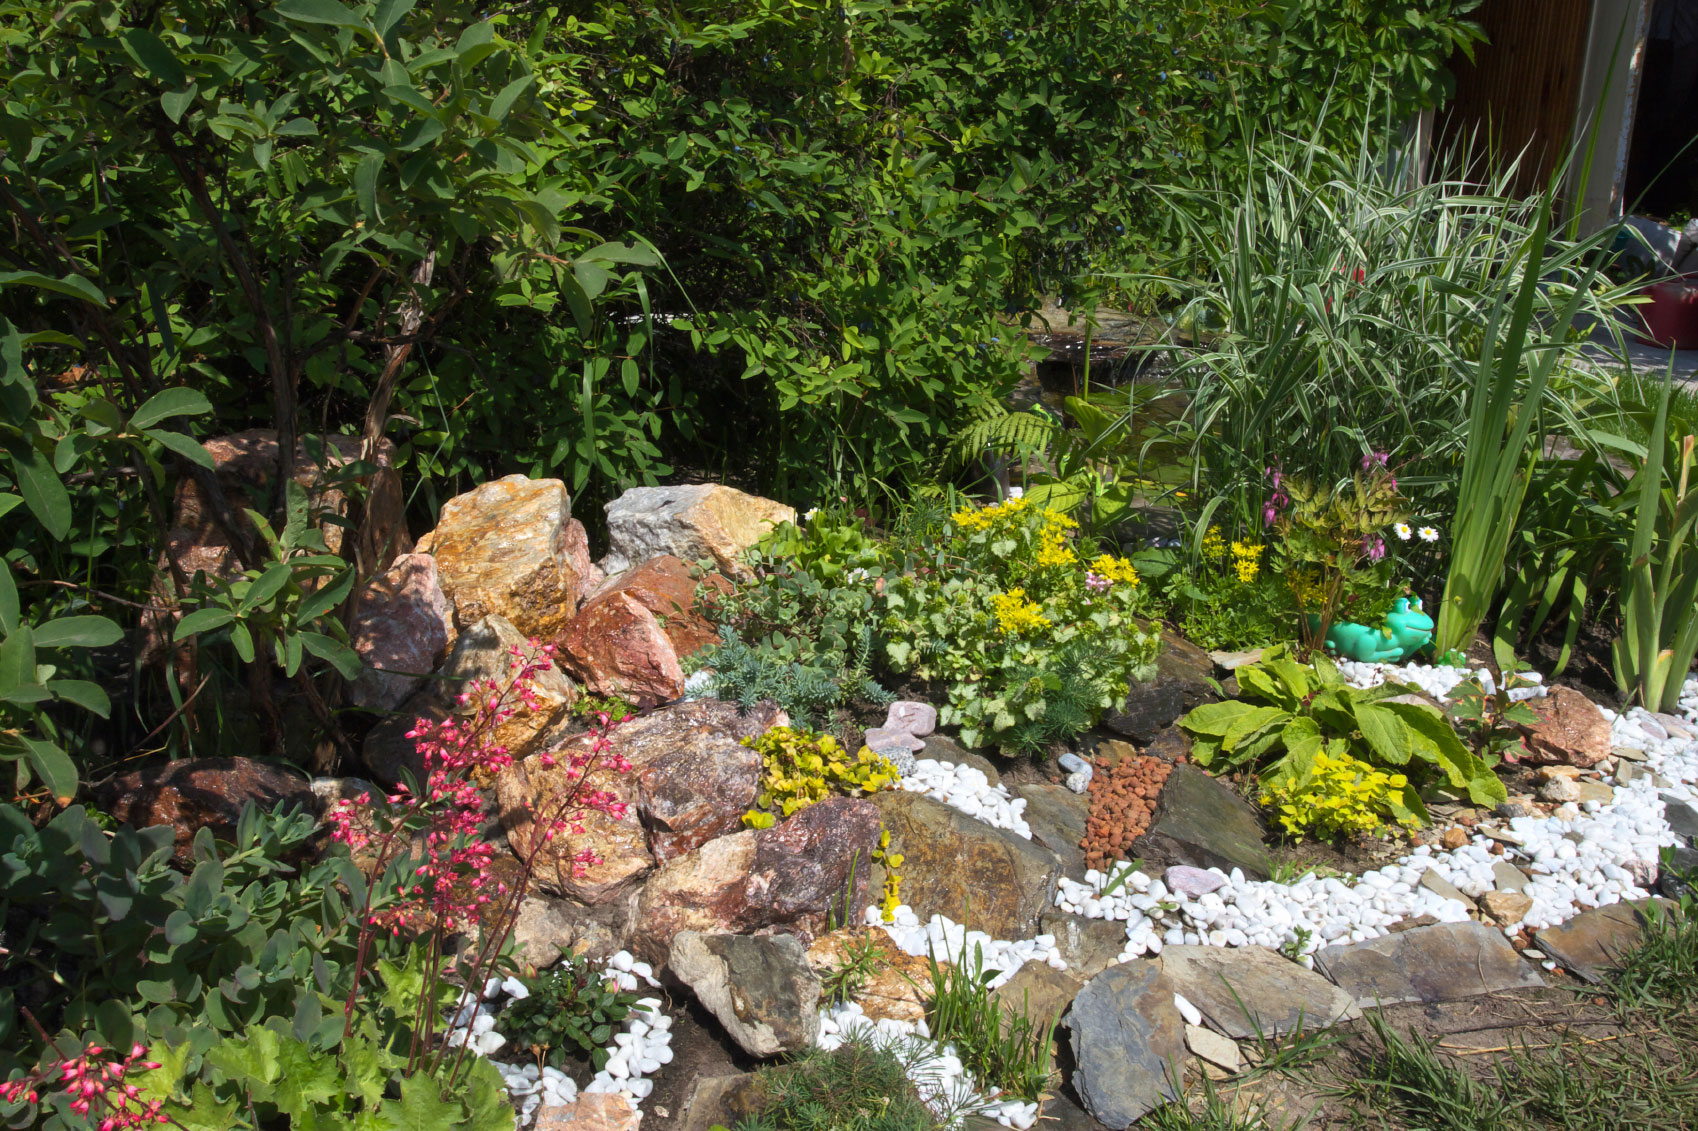 Rockery garden design how to make a rockery for Garden design ideas rockery